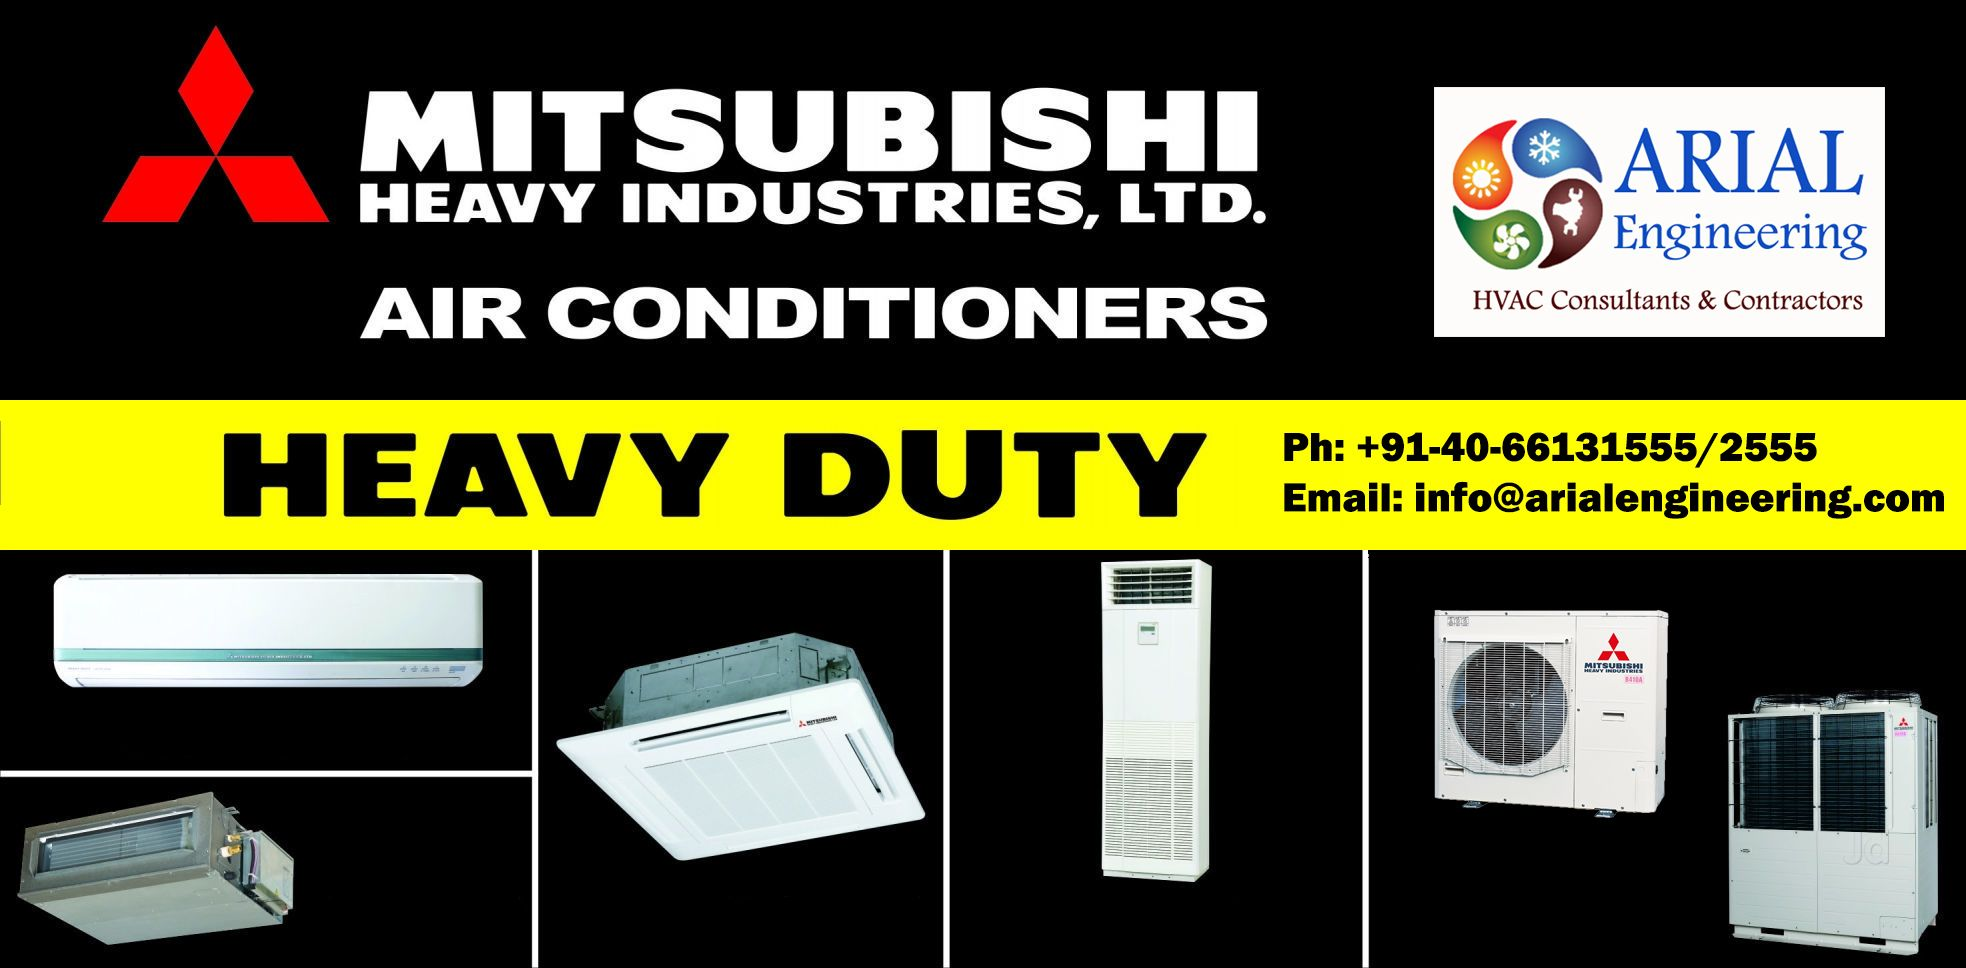 Mitsubishi Heavy Duty Airconditioning Systems... HVAC